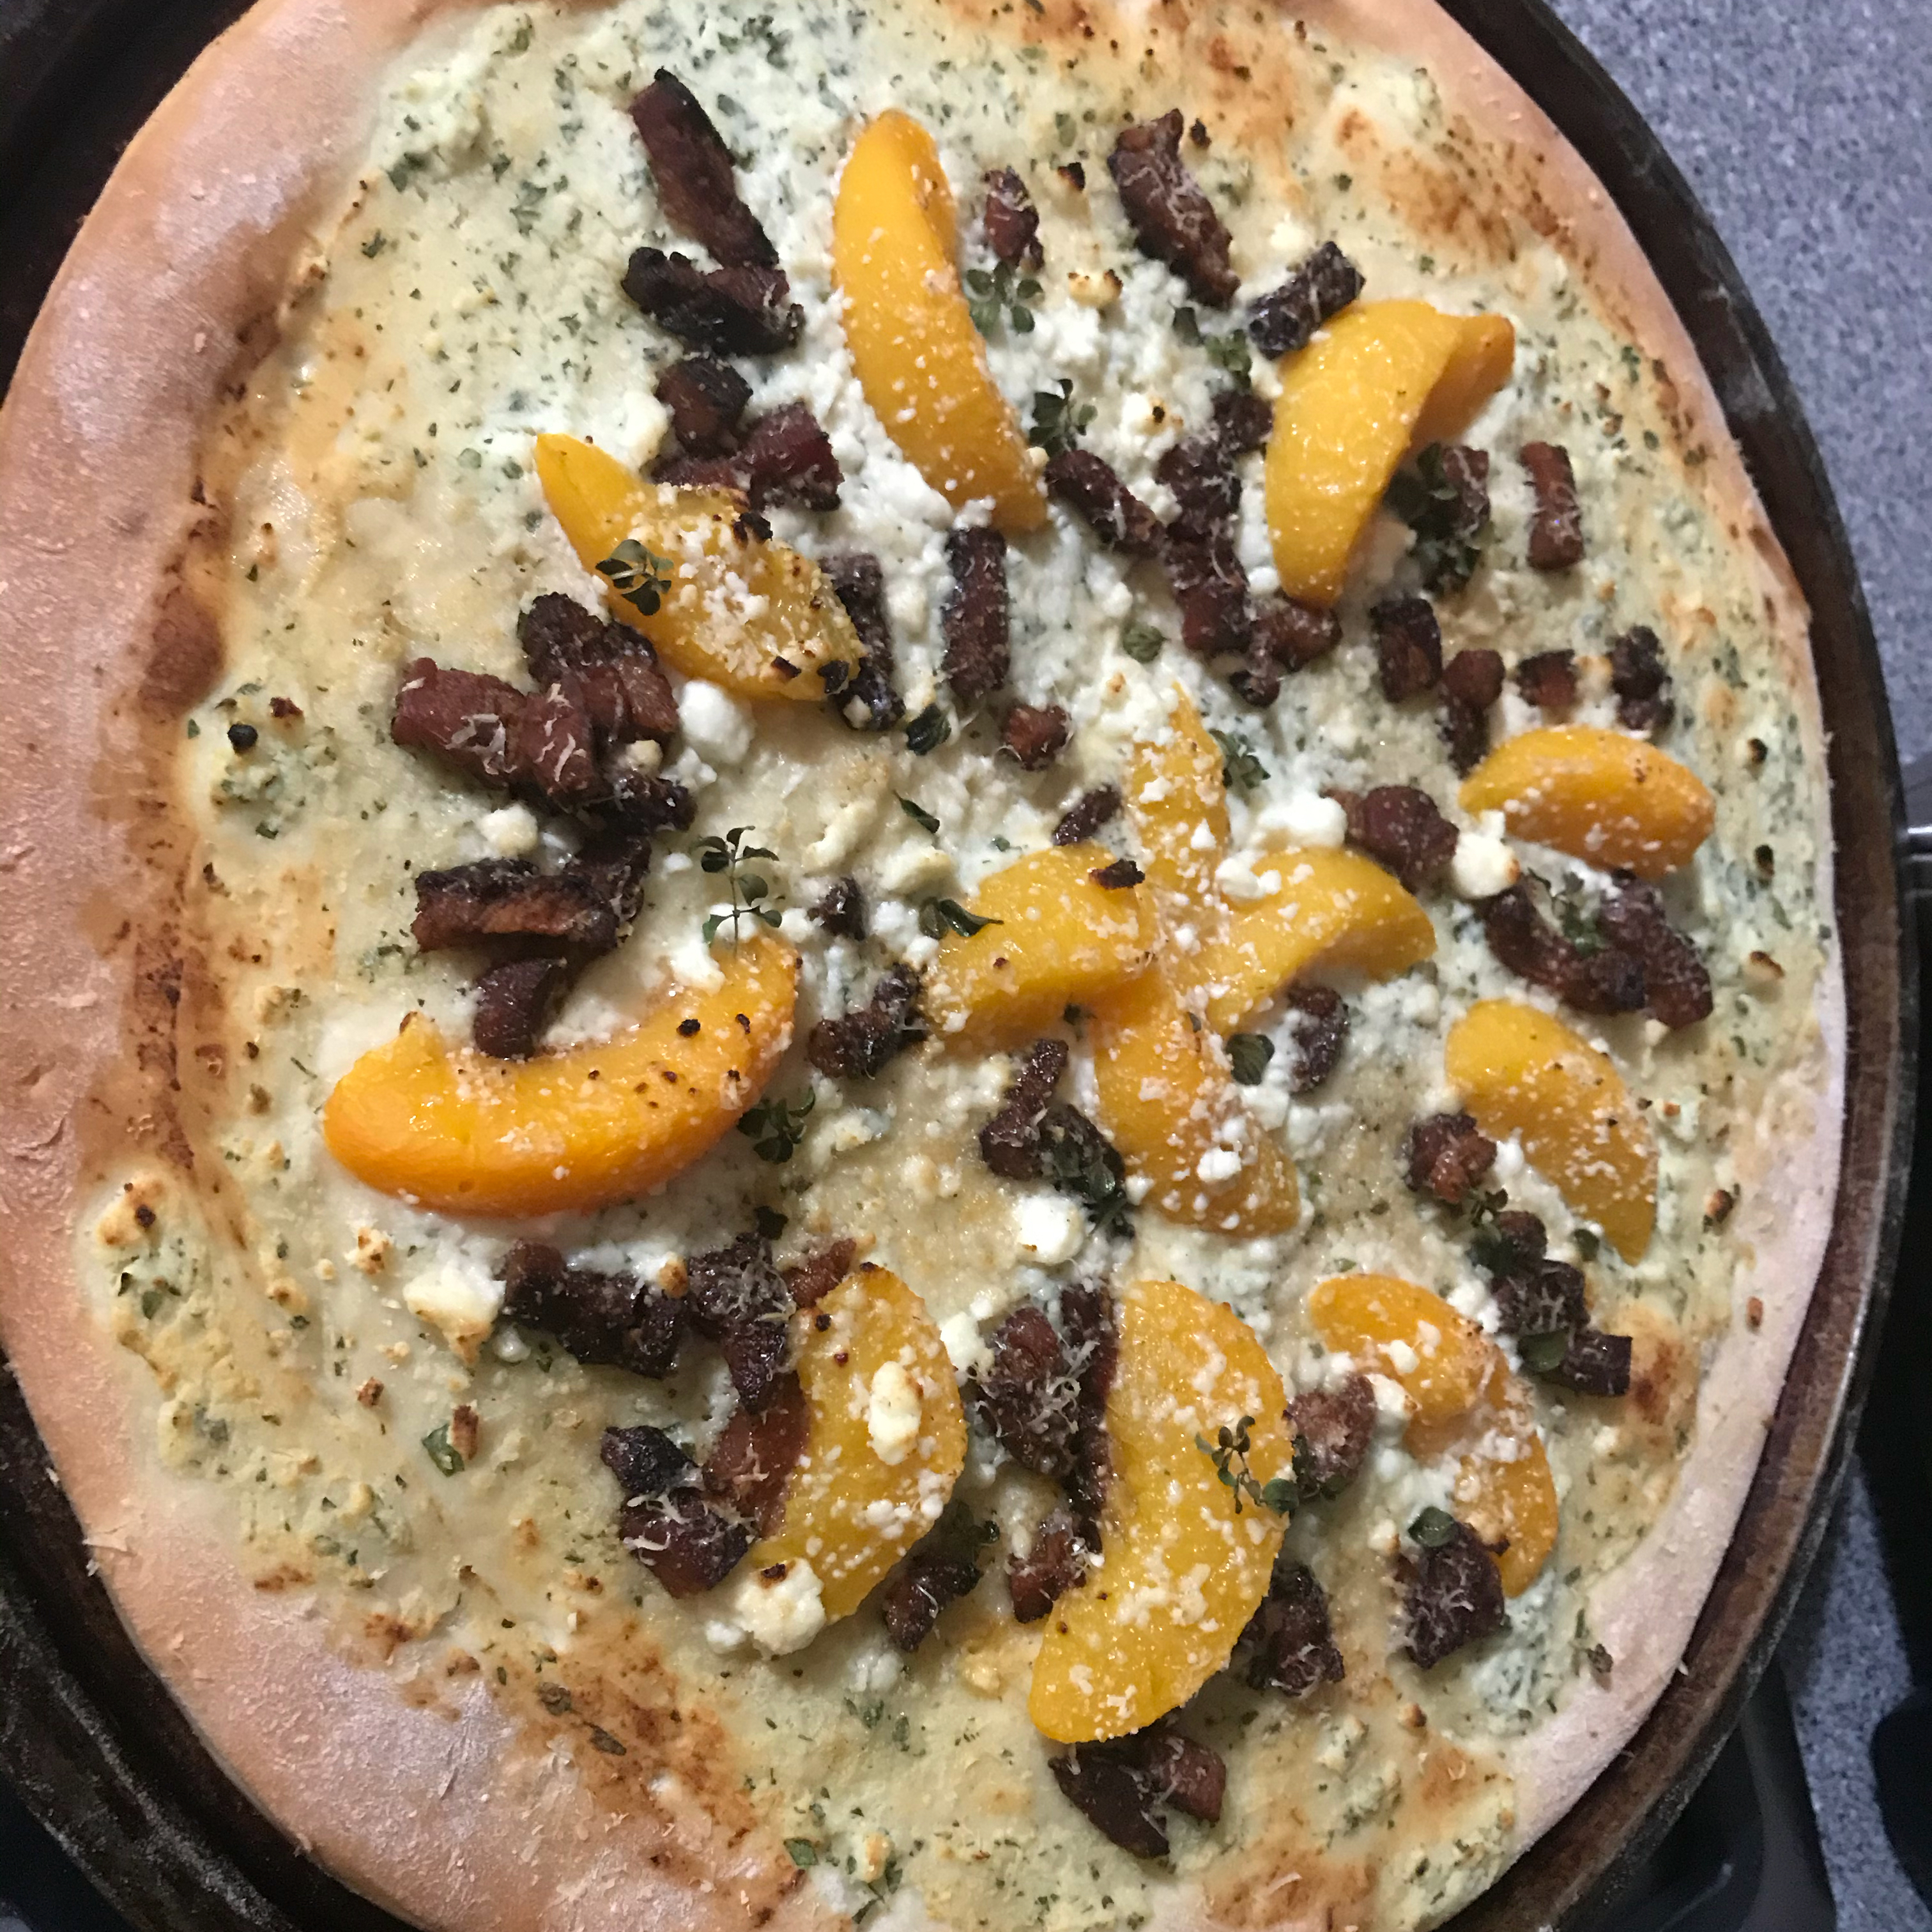 Fried Peach and Pancetta Pizza Marcielynne12